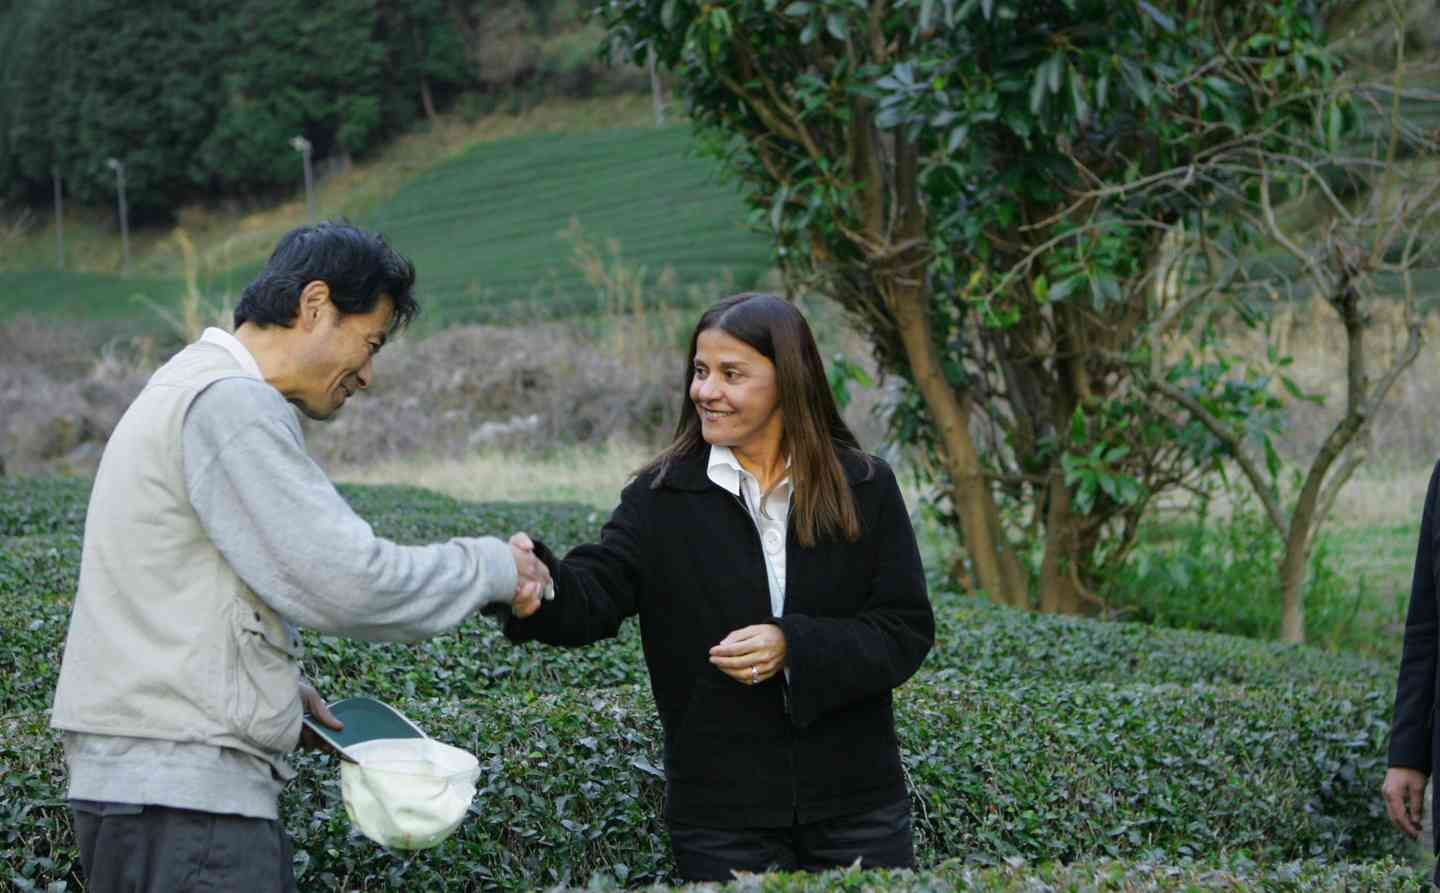 Man and woman shake hands while harvesting tea leaves